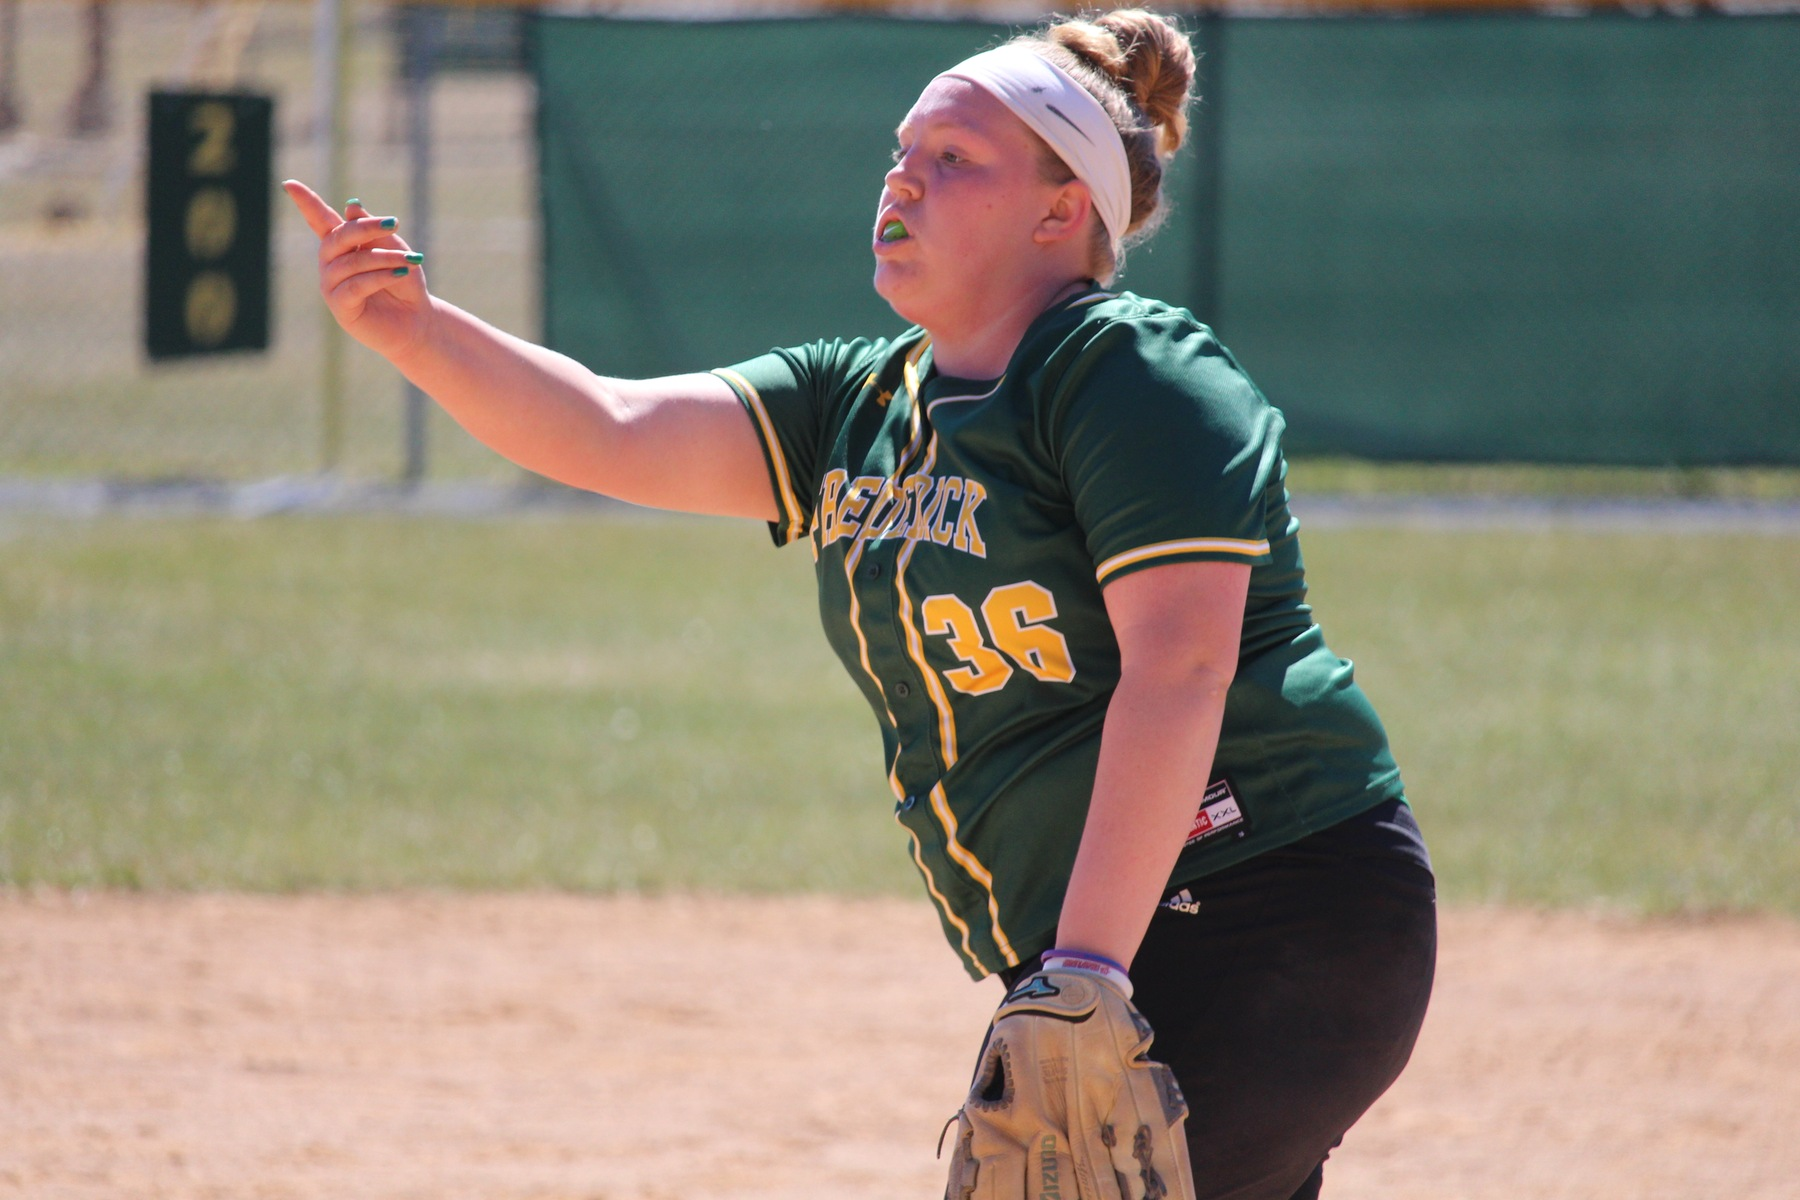 A Tale of Two Games as Cougars and Riverhawks Split Doubleheader